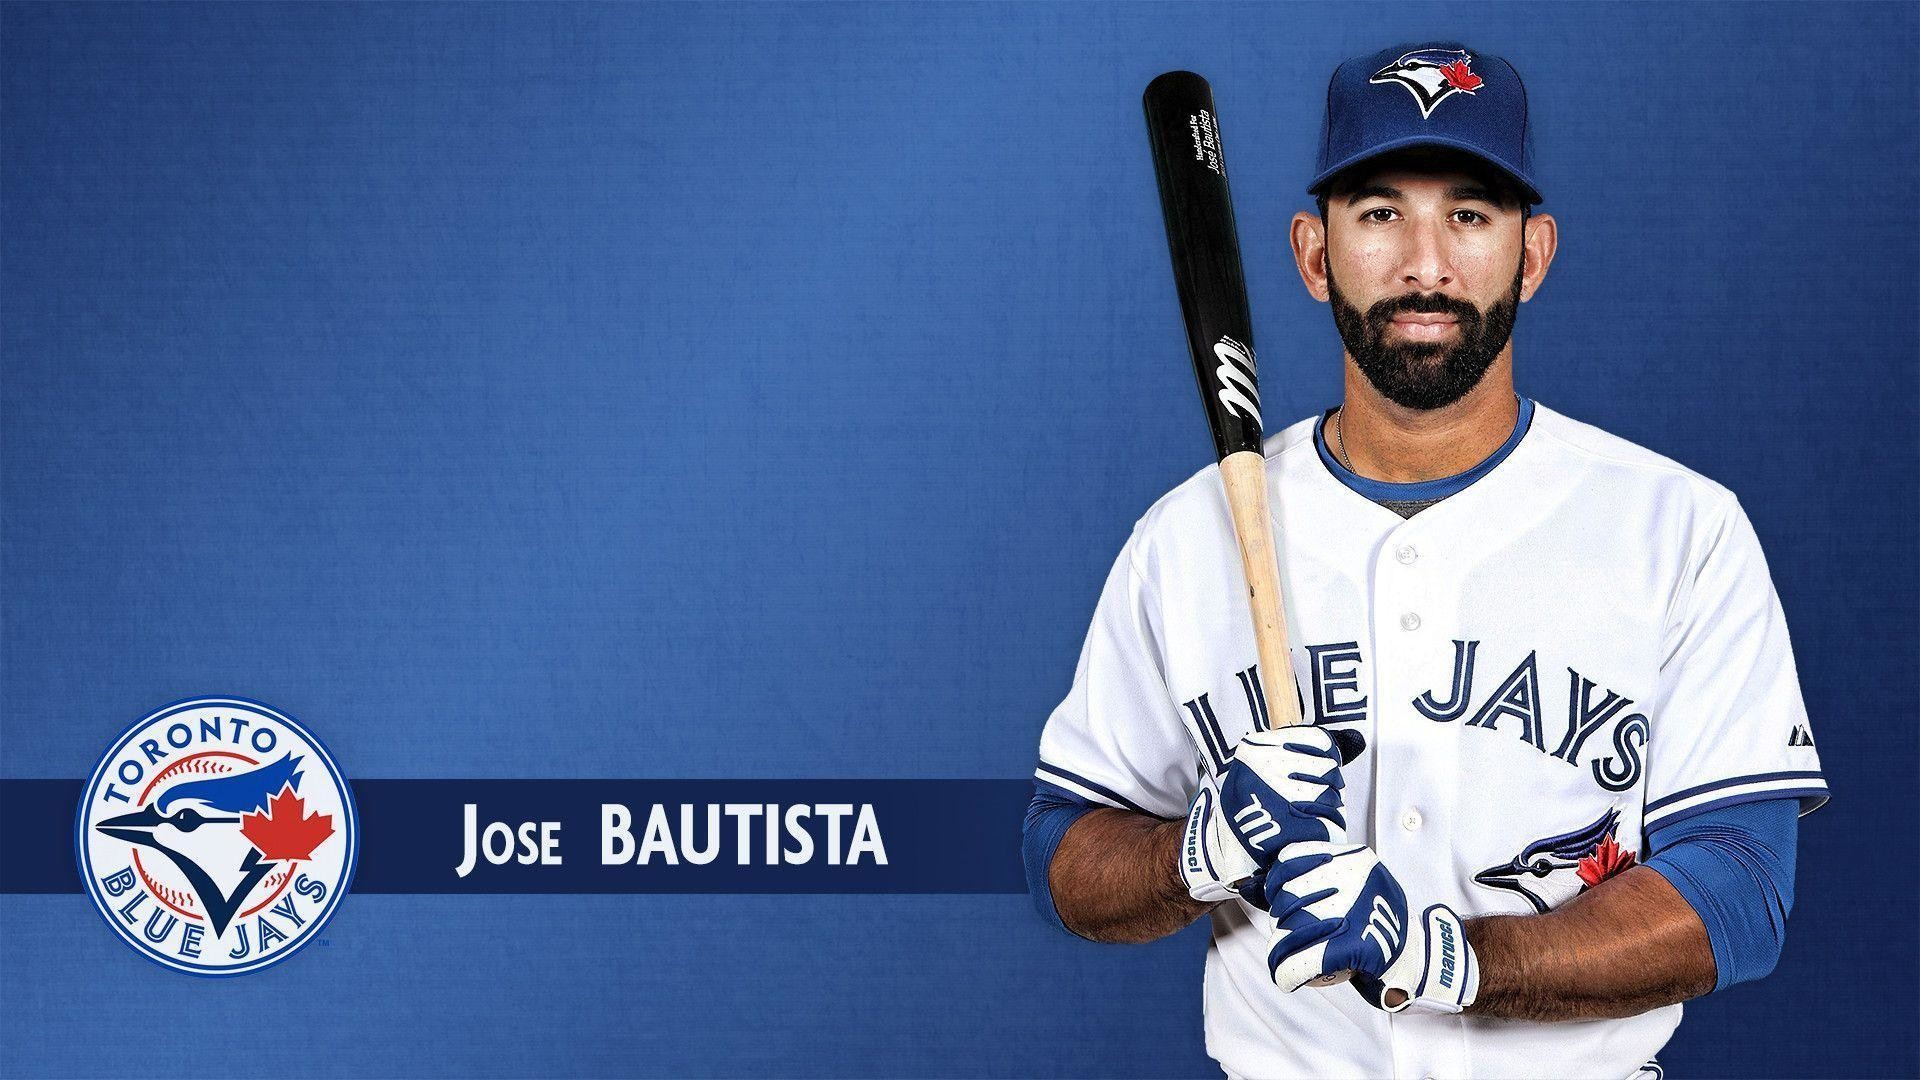 1920x1080 Jose Bautista Wallpapers | Just Good Vibe